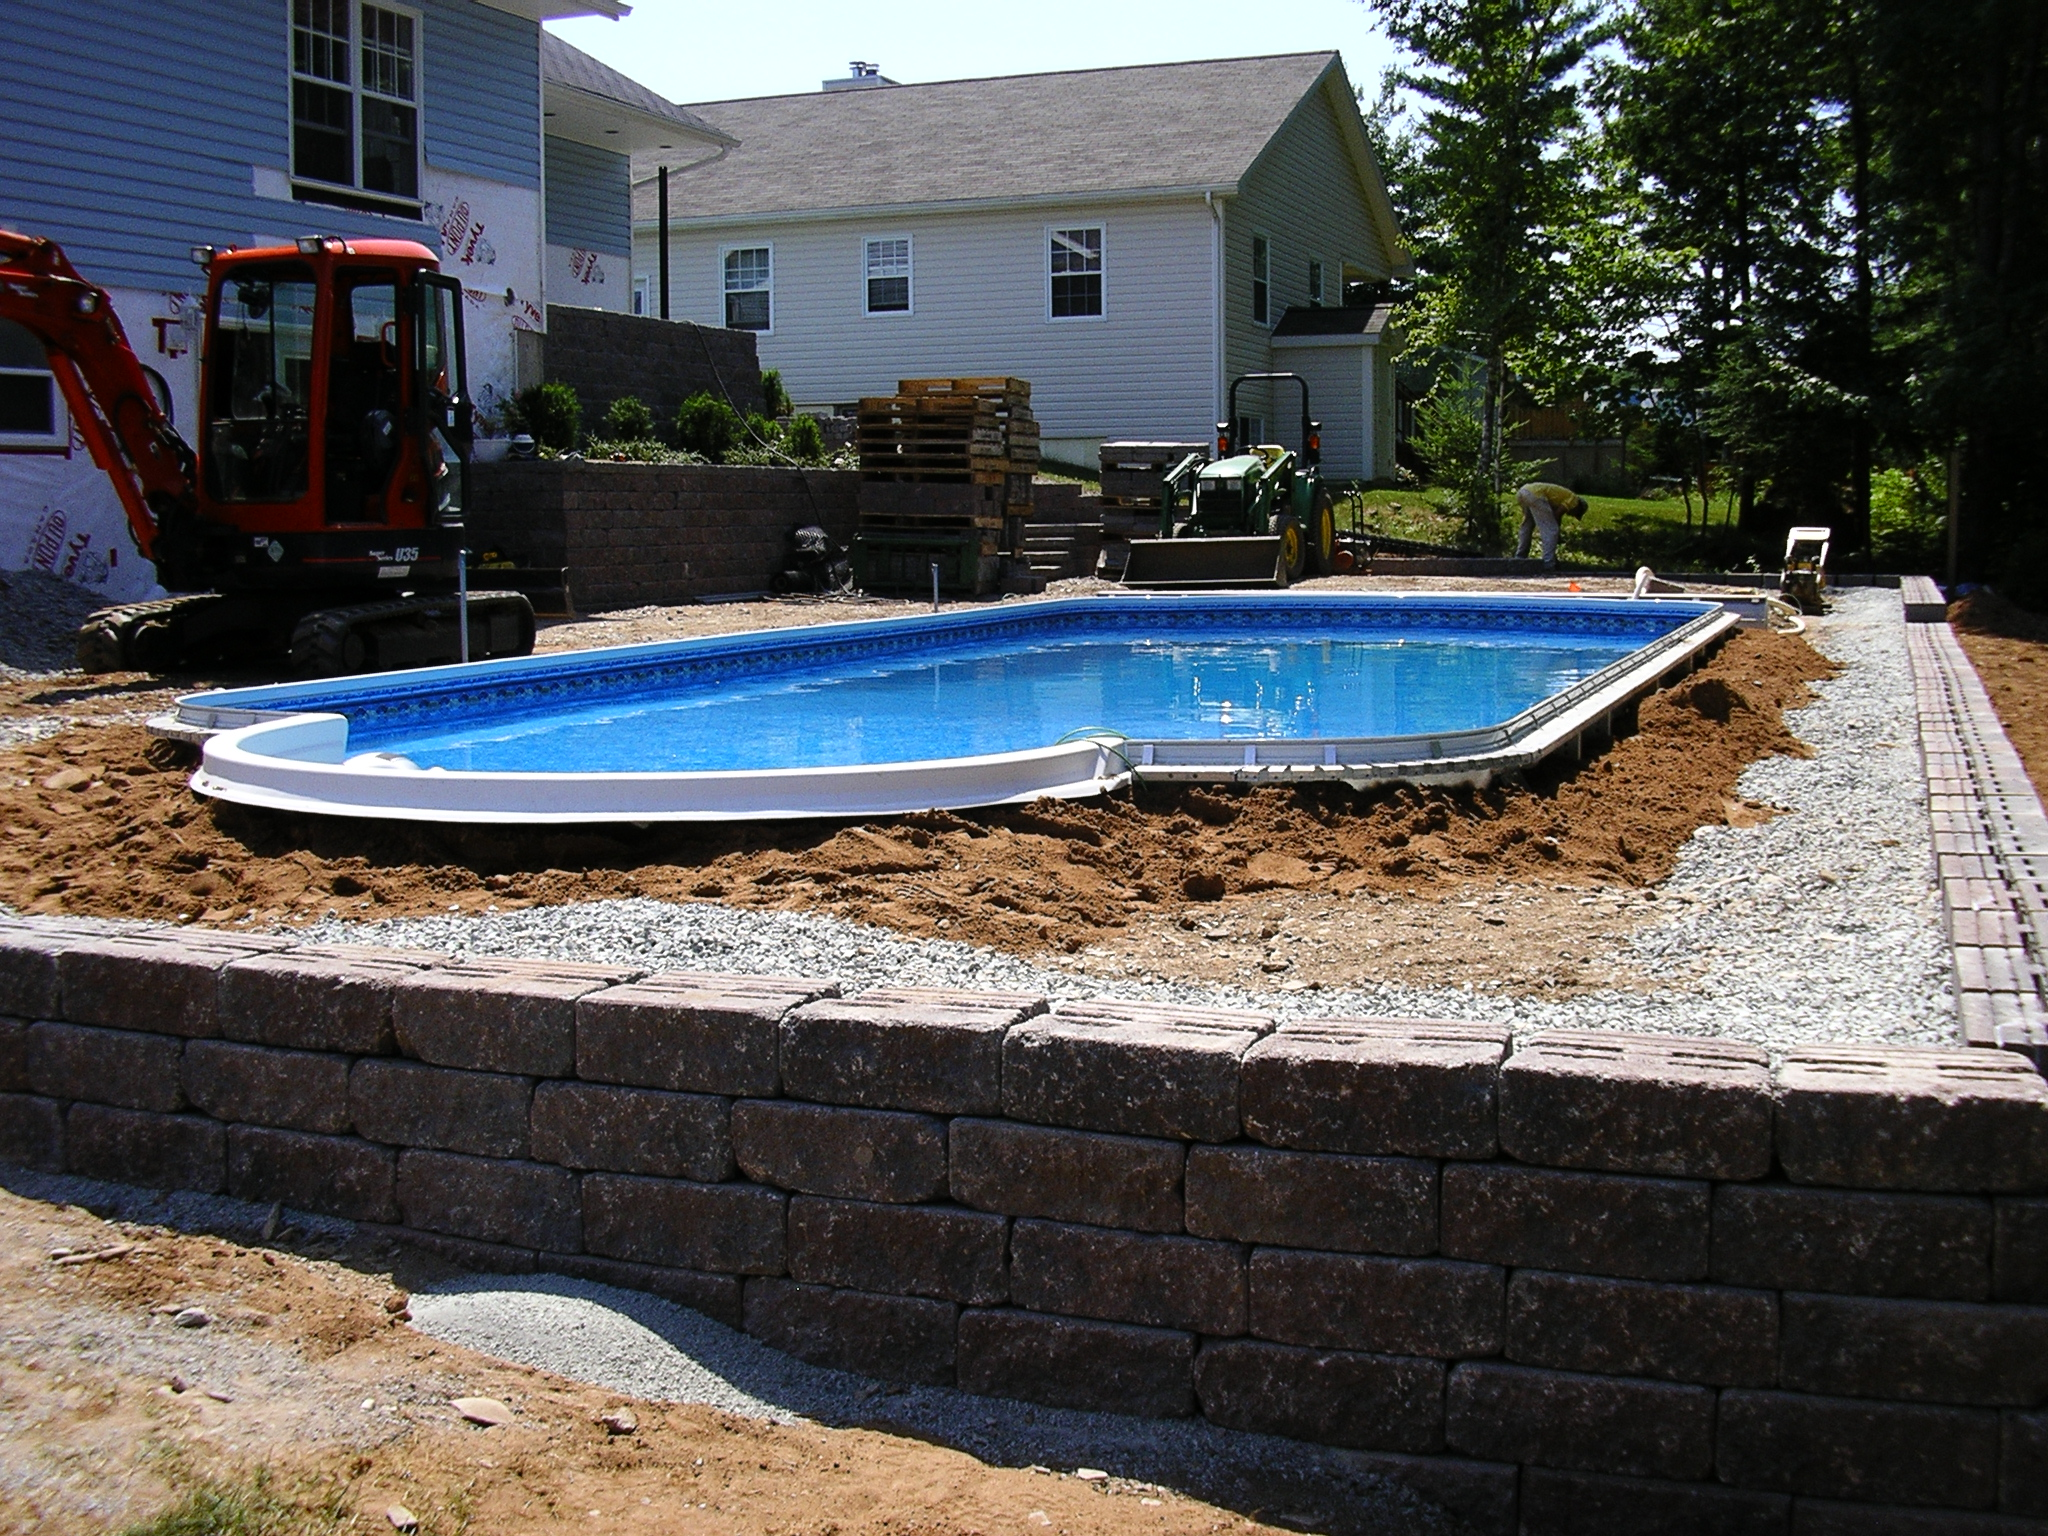 Swimming pool deck .JPG